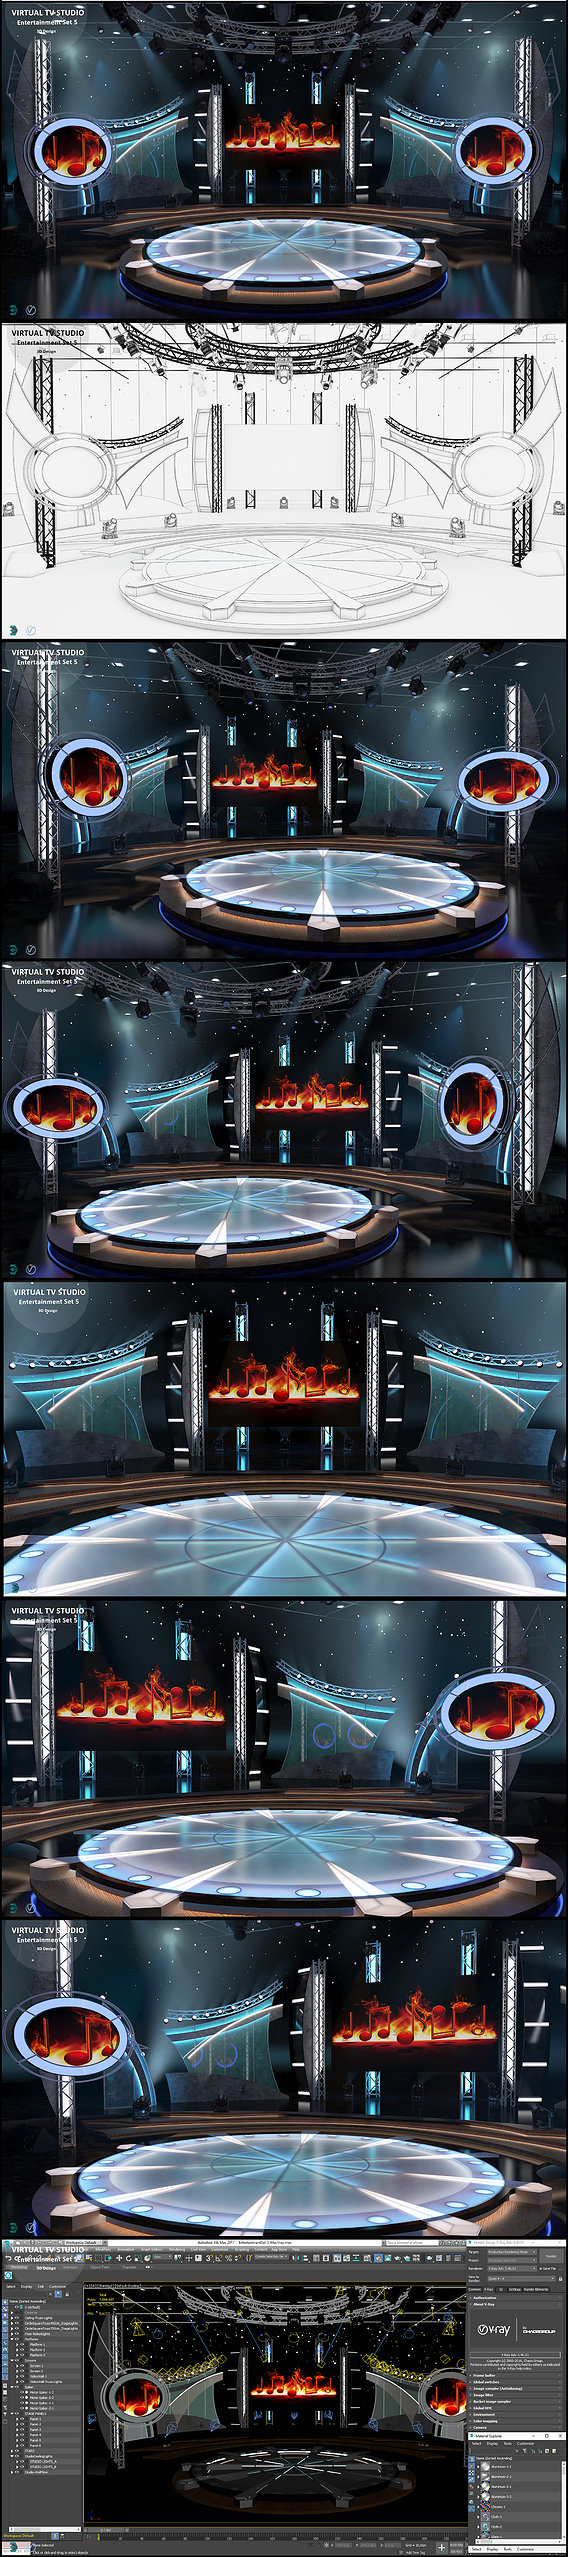 Virtual TV Studio Entertainment Set 5  - 3D Model Designs